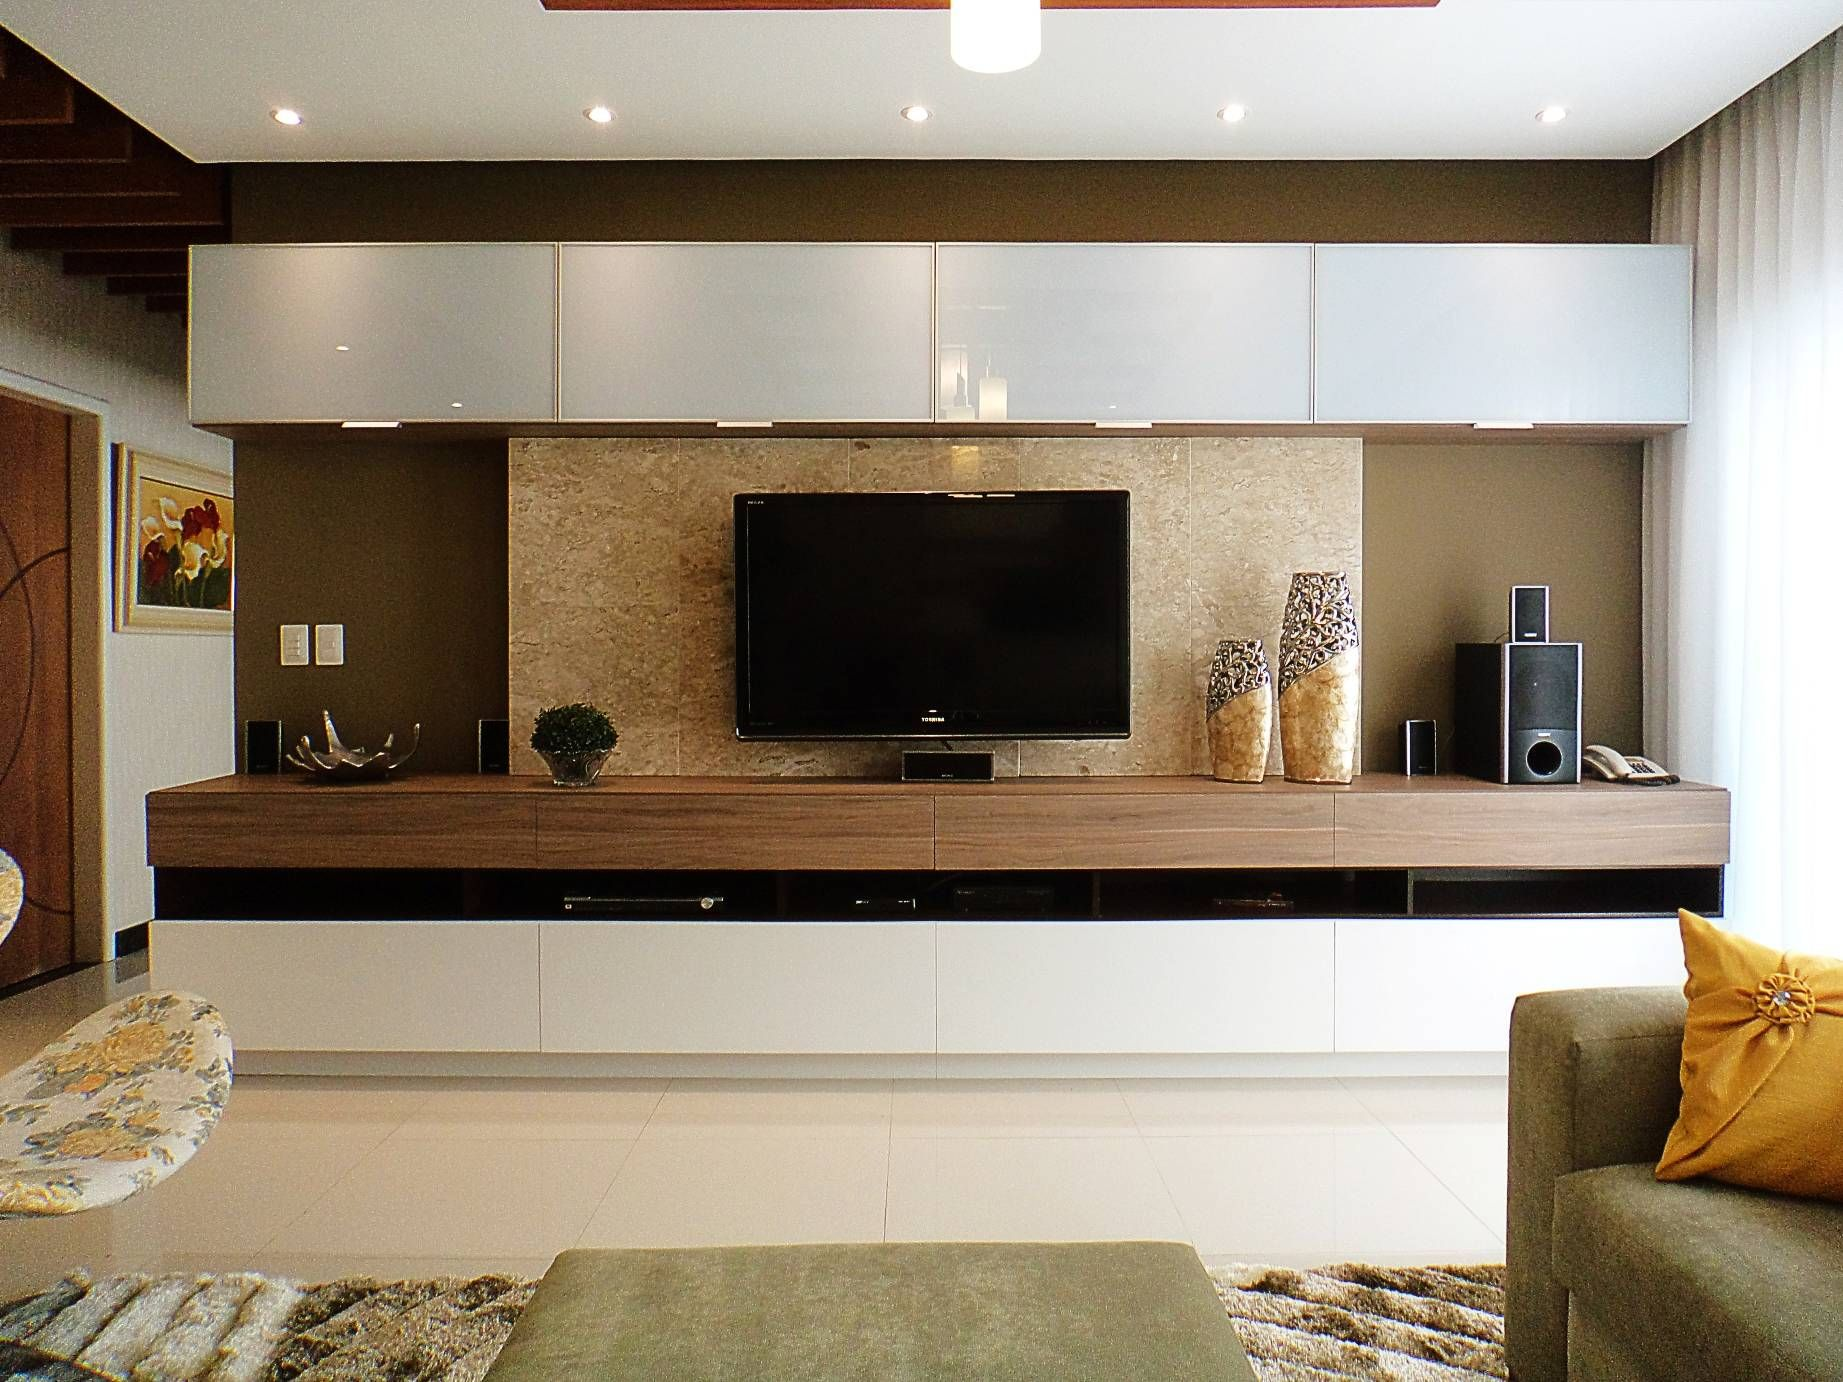 1000+ images about Tv ünitesi-tv wall fireplace on Pinterest